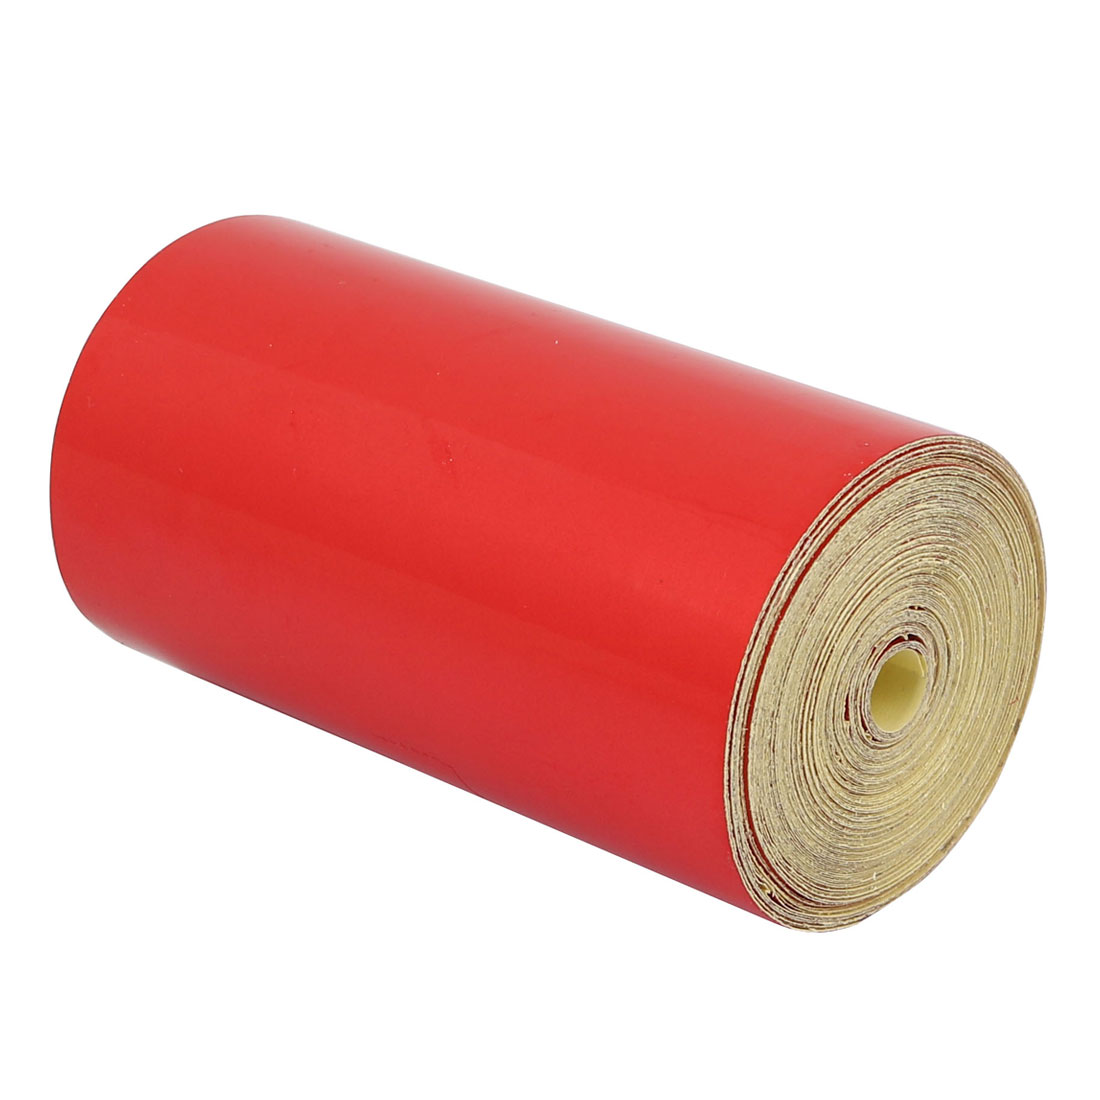 Single Sided Adhesive Reflective Warning Tape Red 10M Length 10cm Width